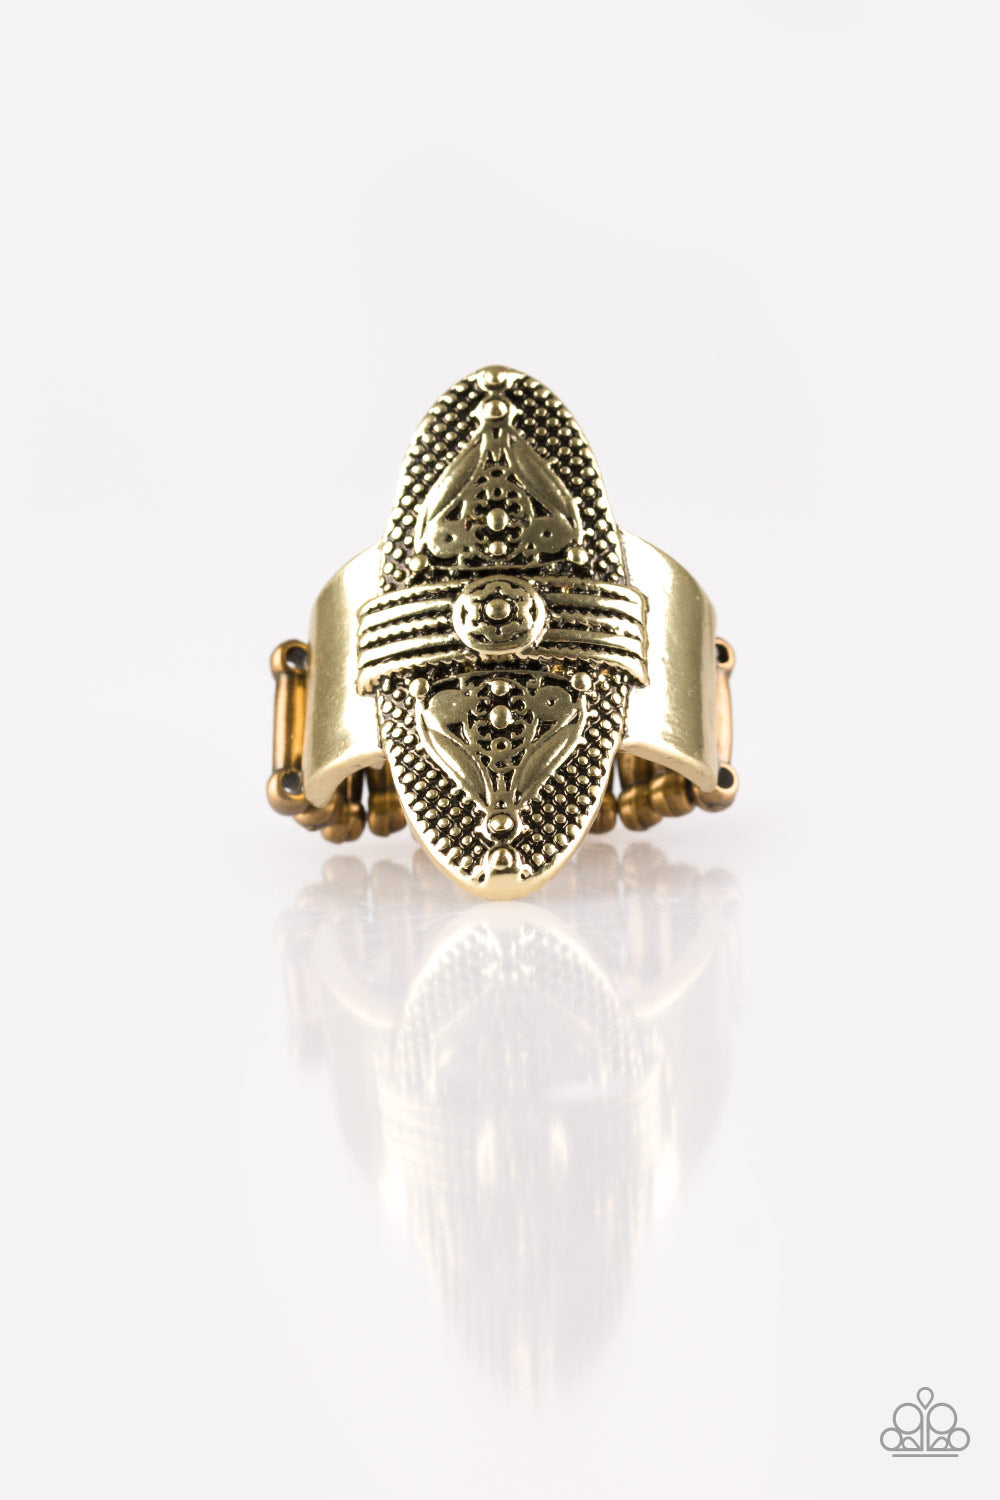 Paparazzi Accessories - Paparazzi Ring - Tonga Tour - Brass - Rings